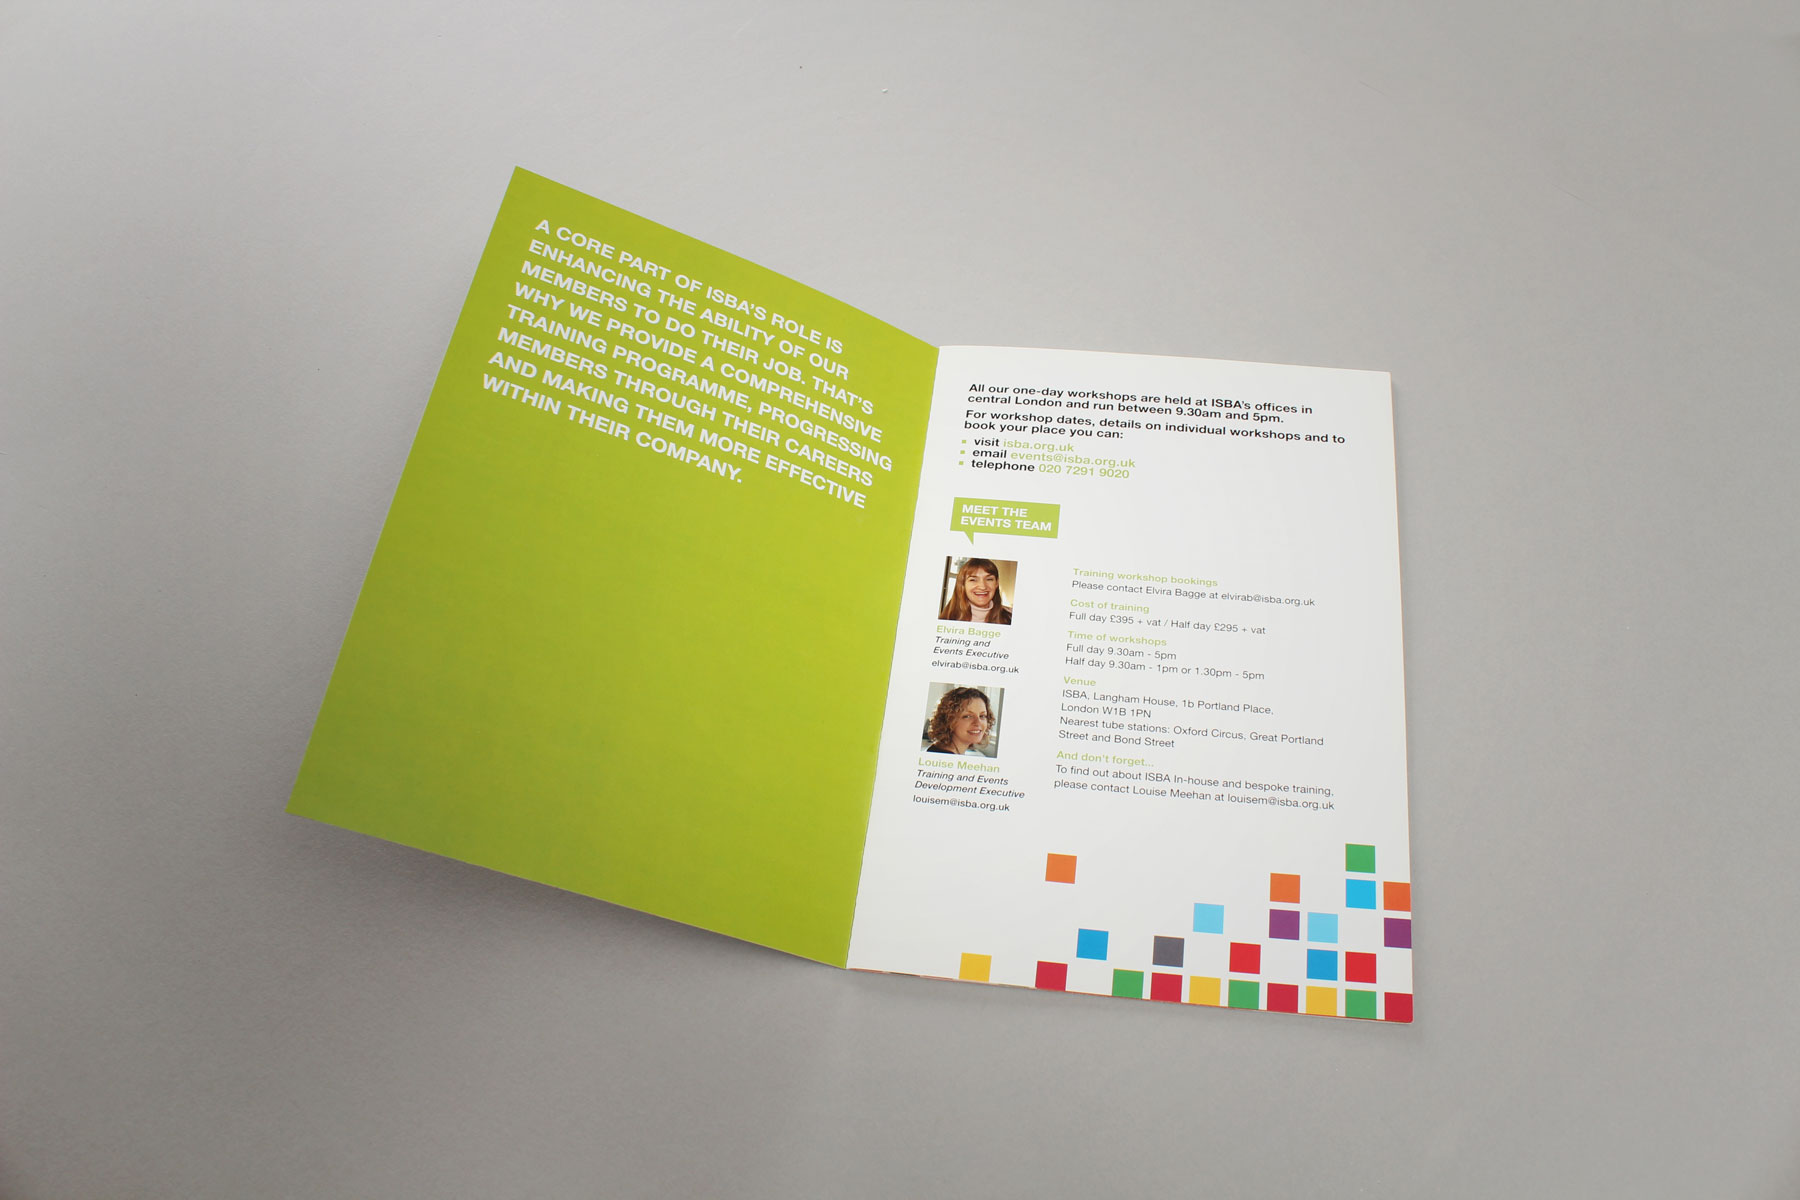 The publications are designed for ease of use and legibility.